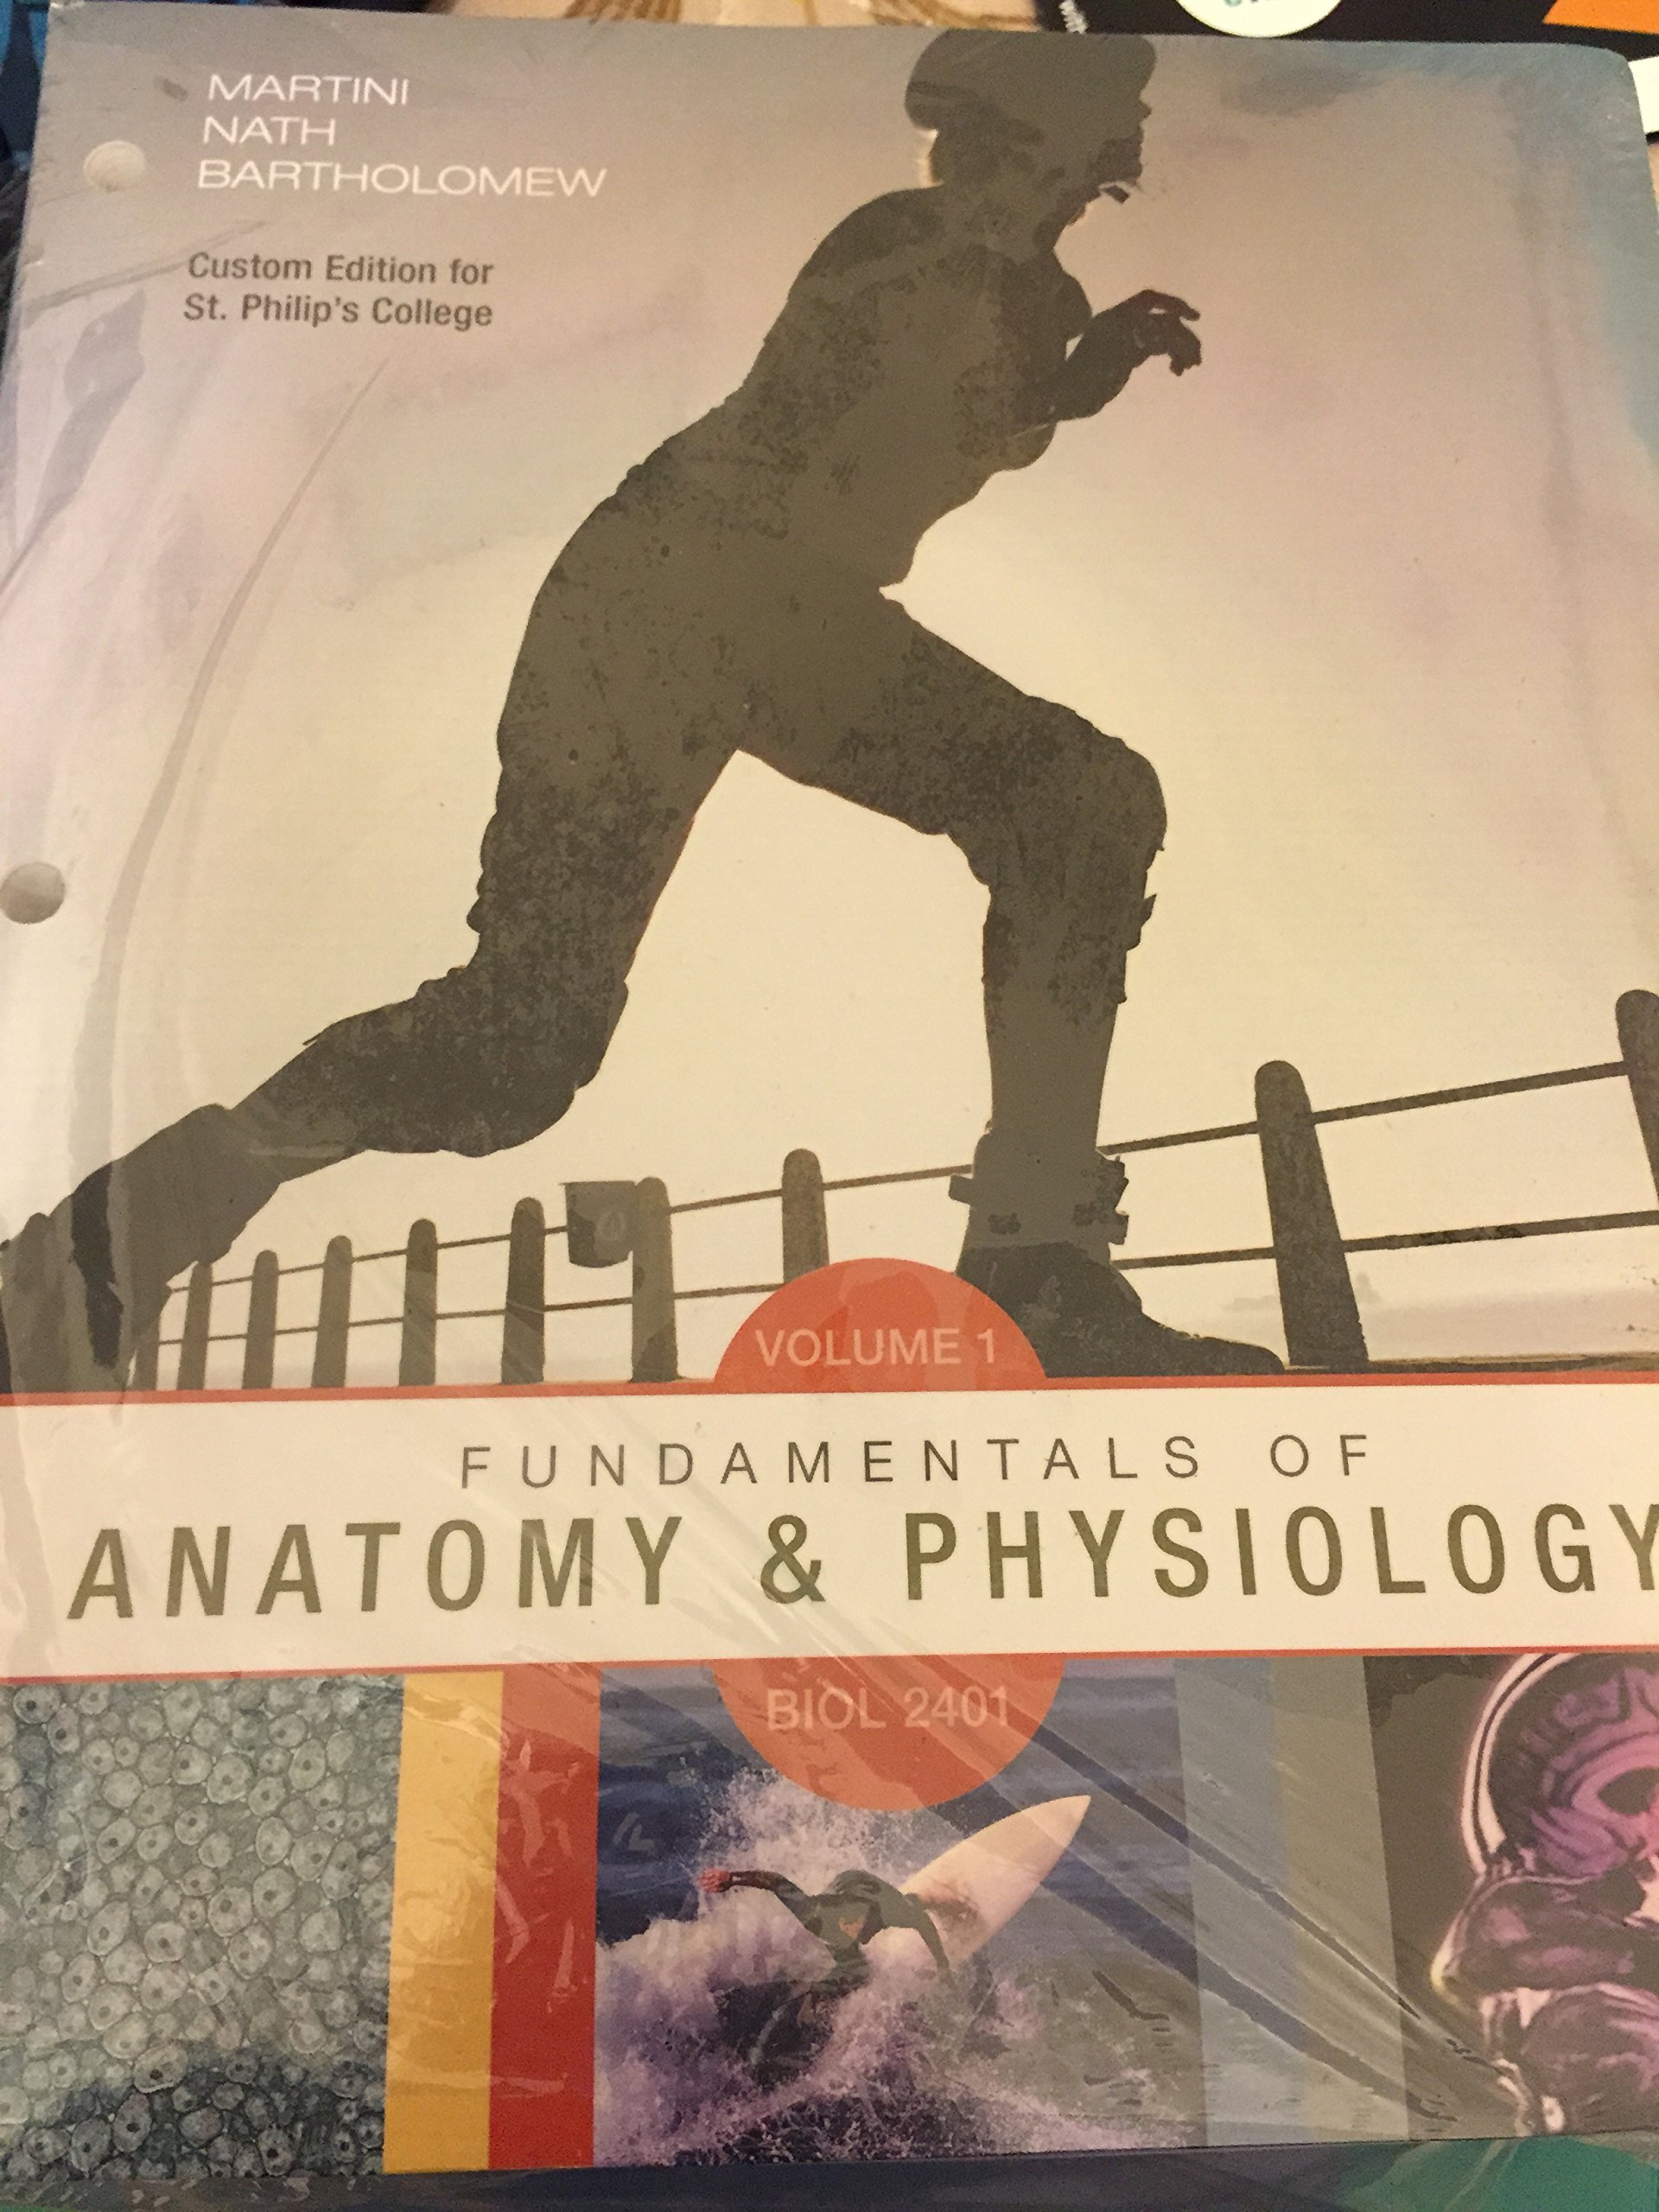 Fundamentals of Anatomy and Physiology: Nath, Bartholomew Martini ...